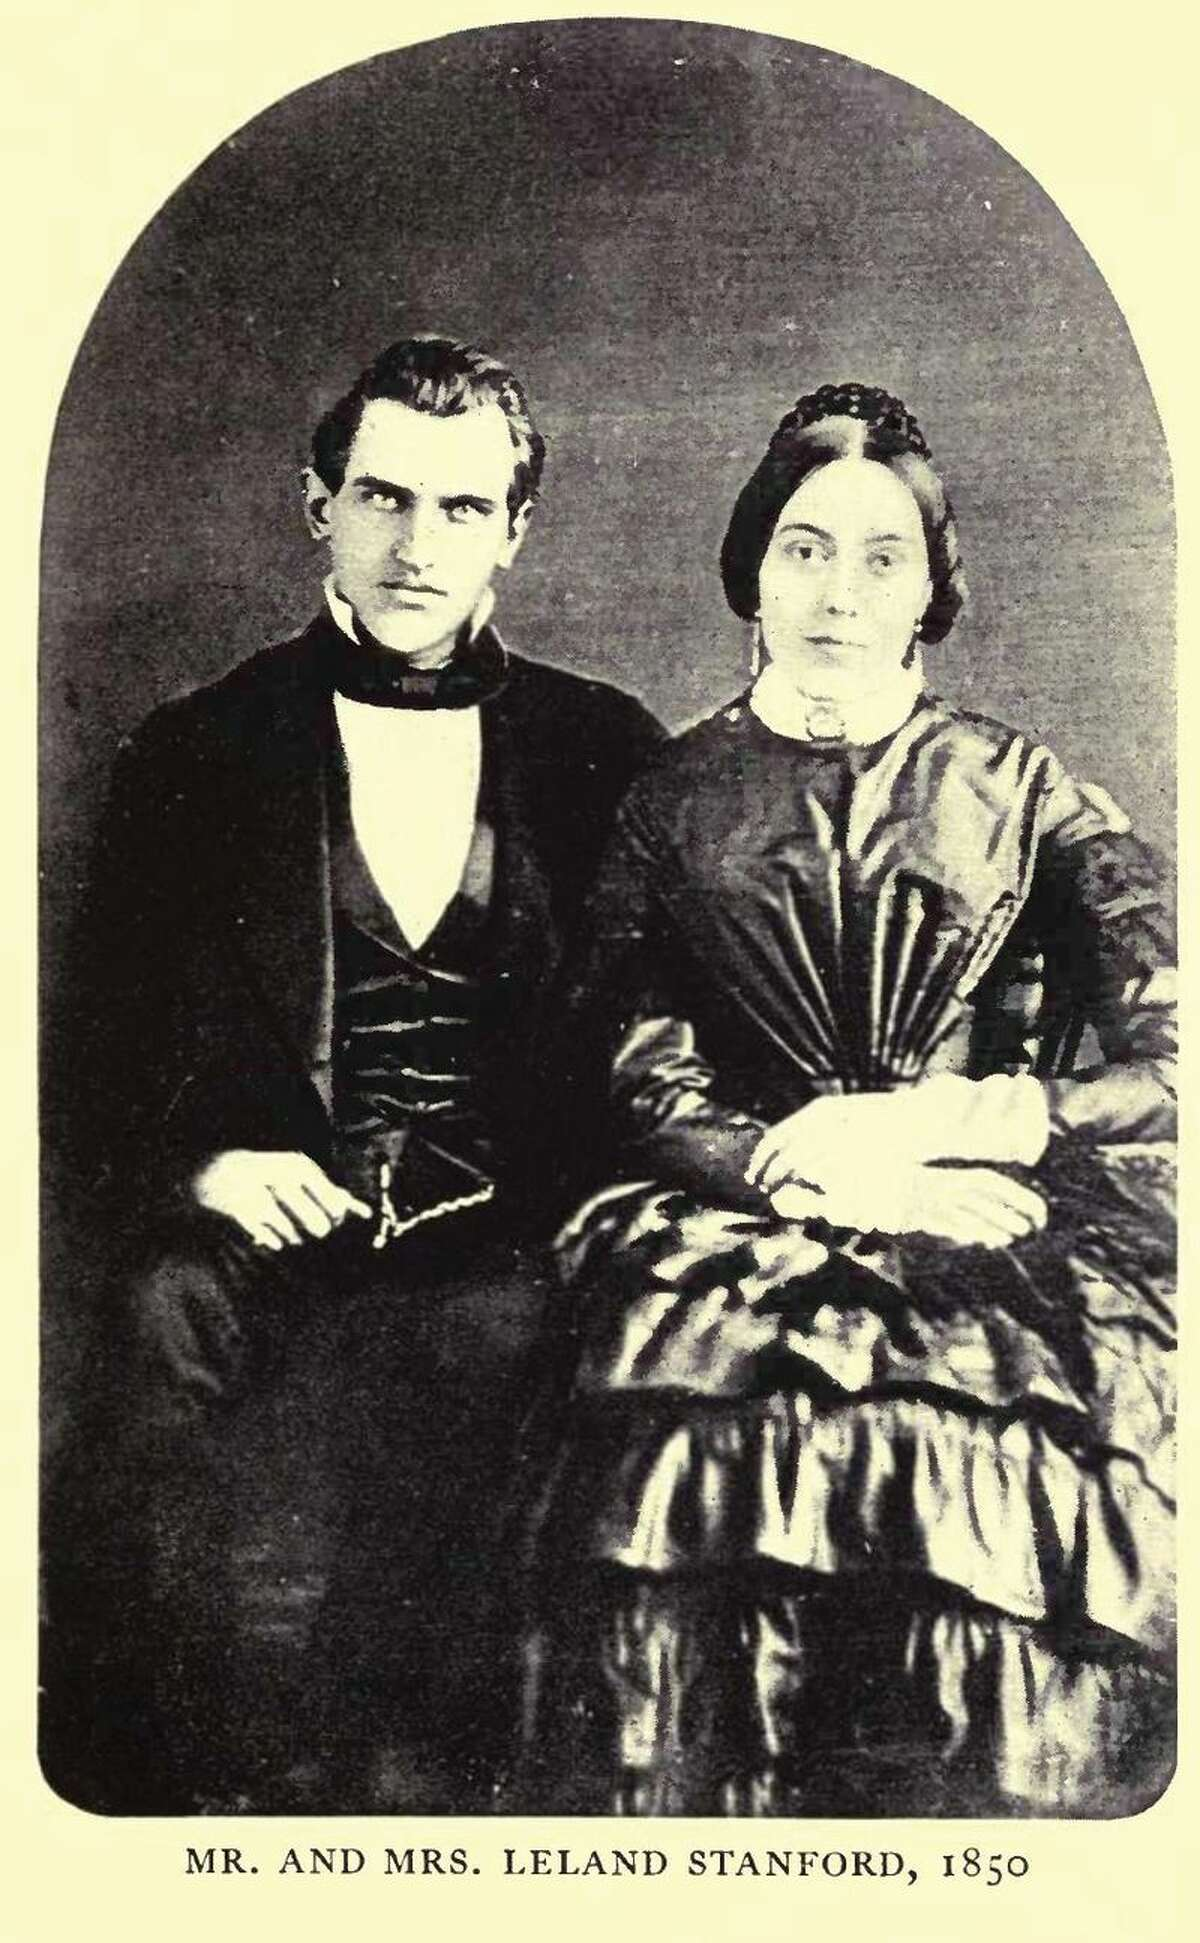 A portrait of Jane and Leland Stanford from 1850.